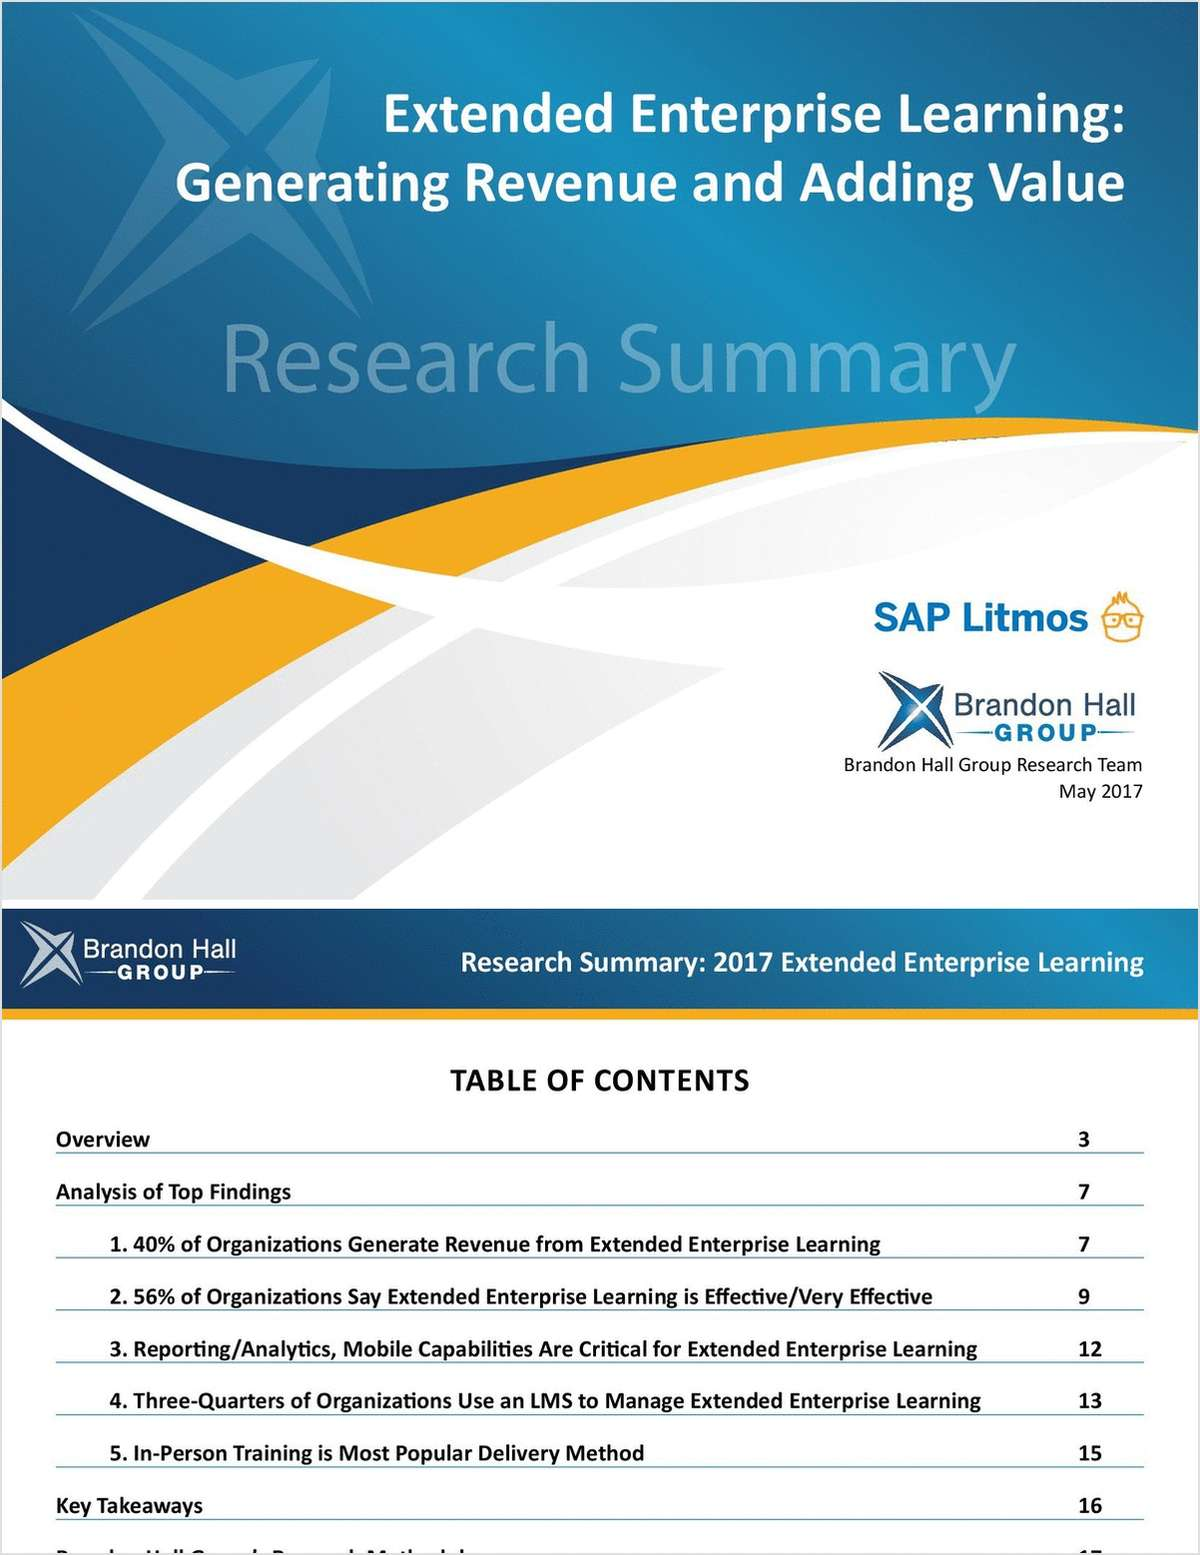 Extended Enterprise Learning: Generating Revenue and Adding Value